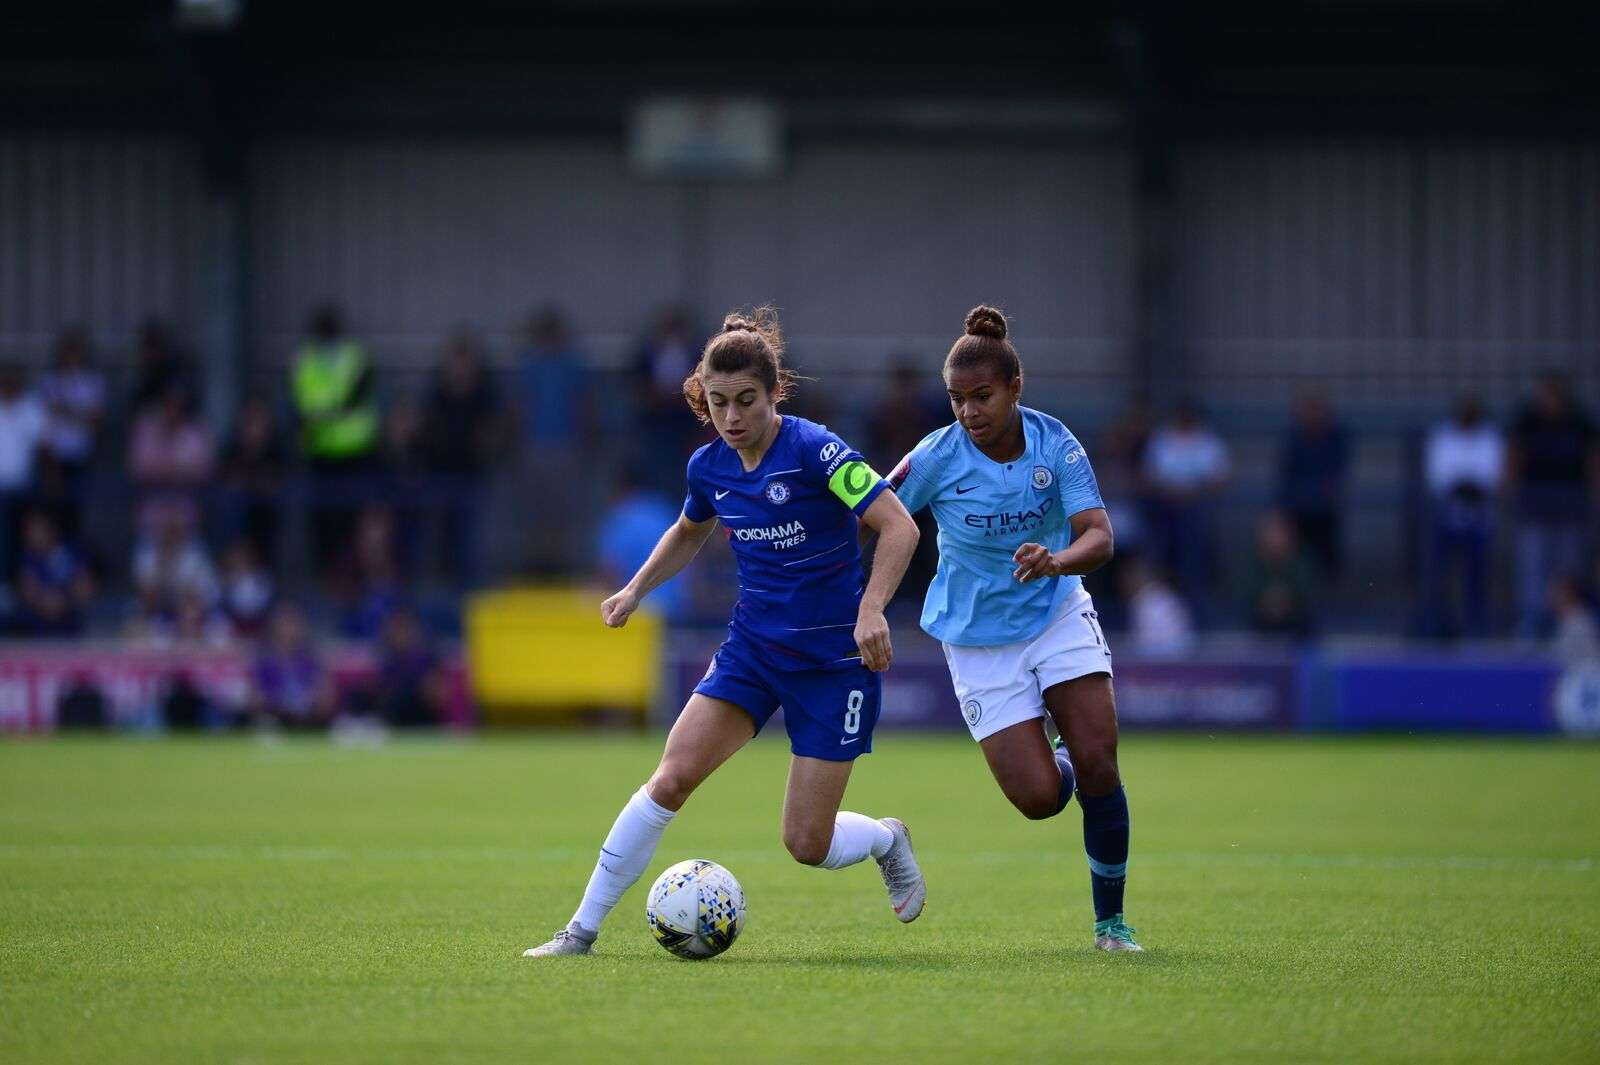 Pic: Chelsea Women FC/Bradley Collyer